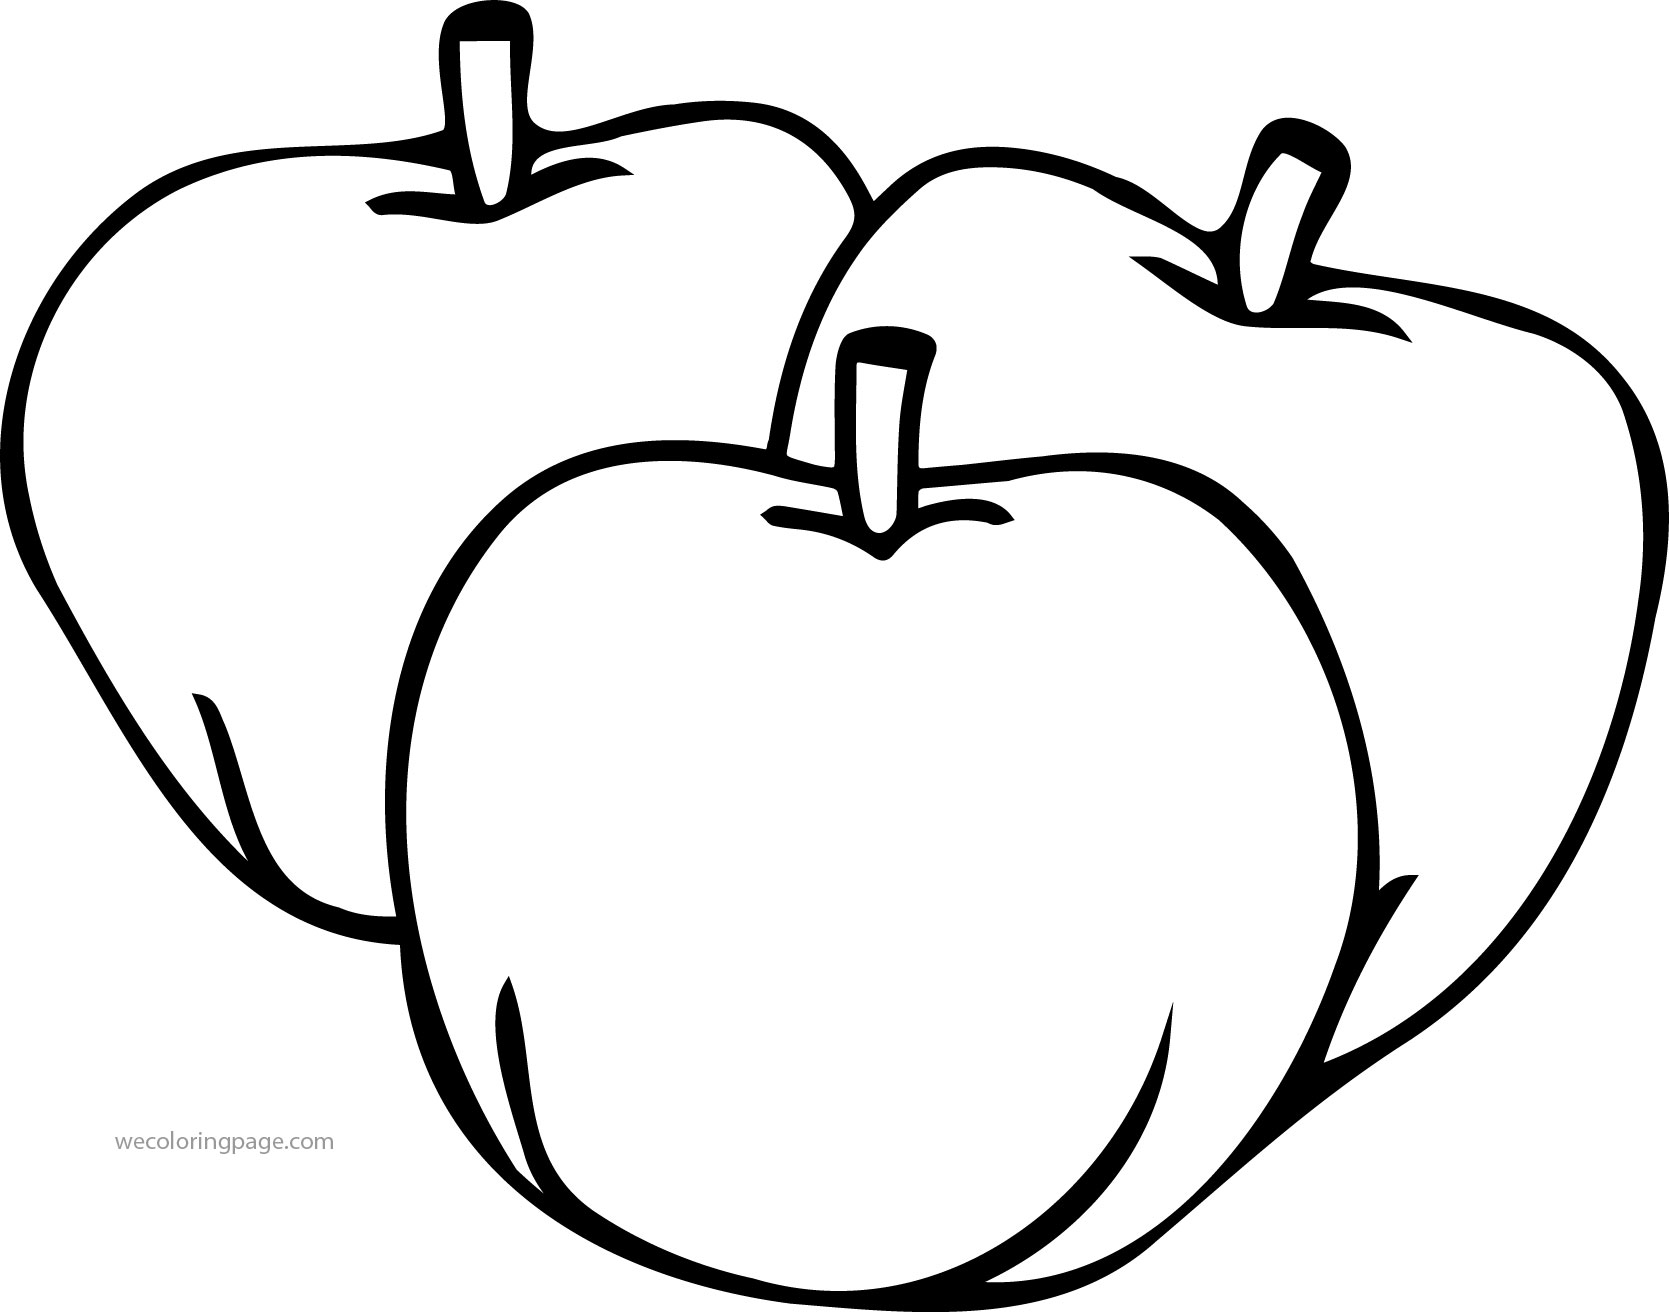 1669x1312 How To Draw Apple Coloring Pages For Kids Learn Colors With Leaf